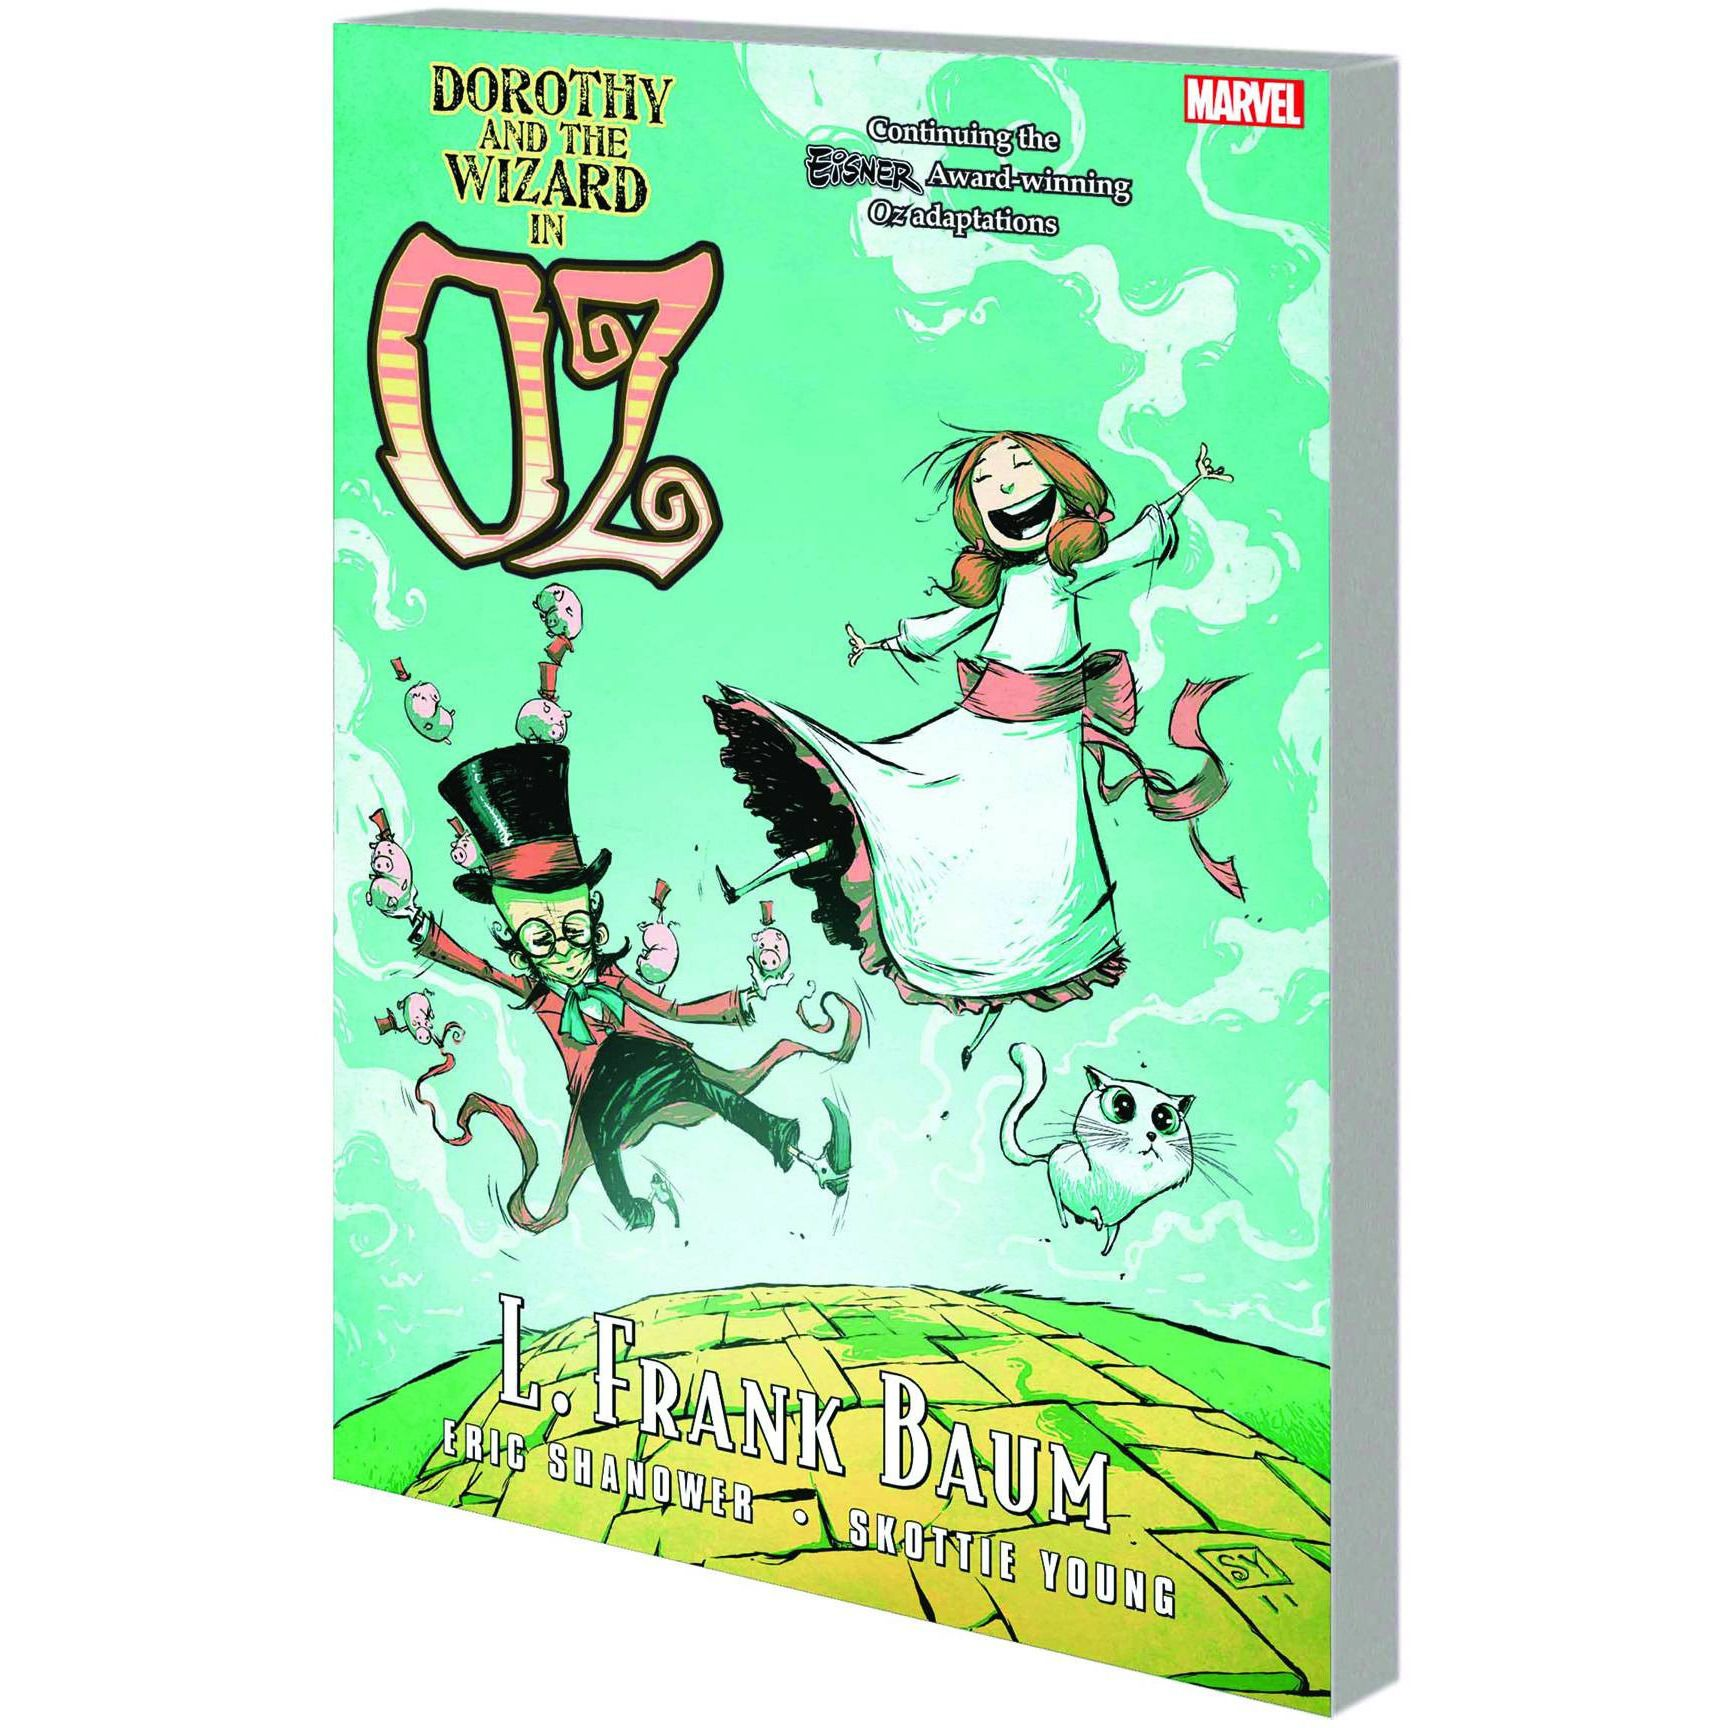 Dorothy and the Wizard in Oz HC Uncanny!